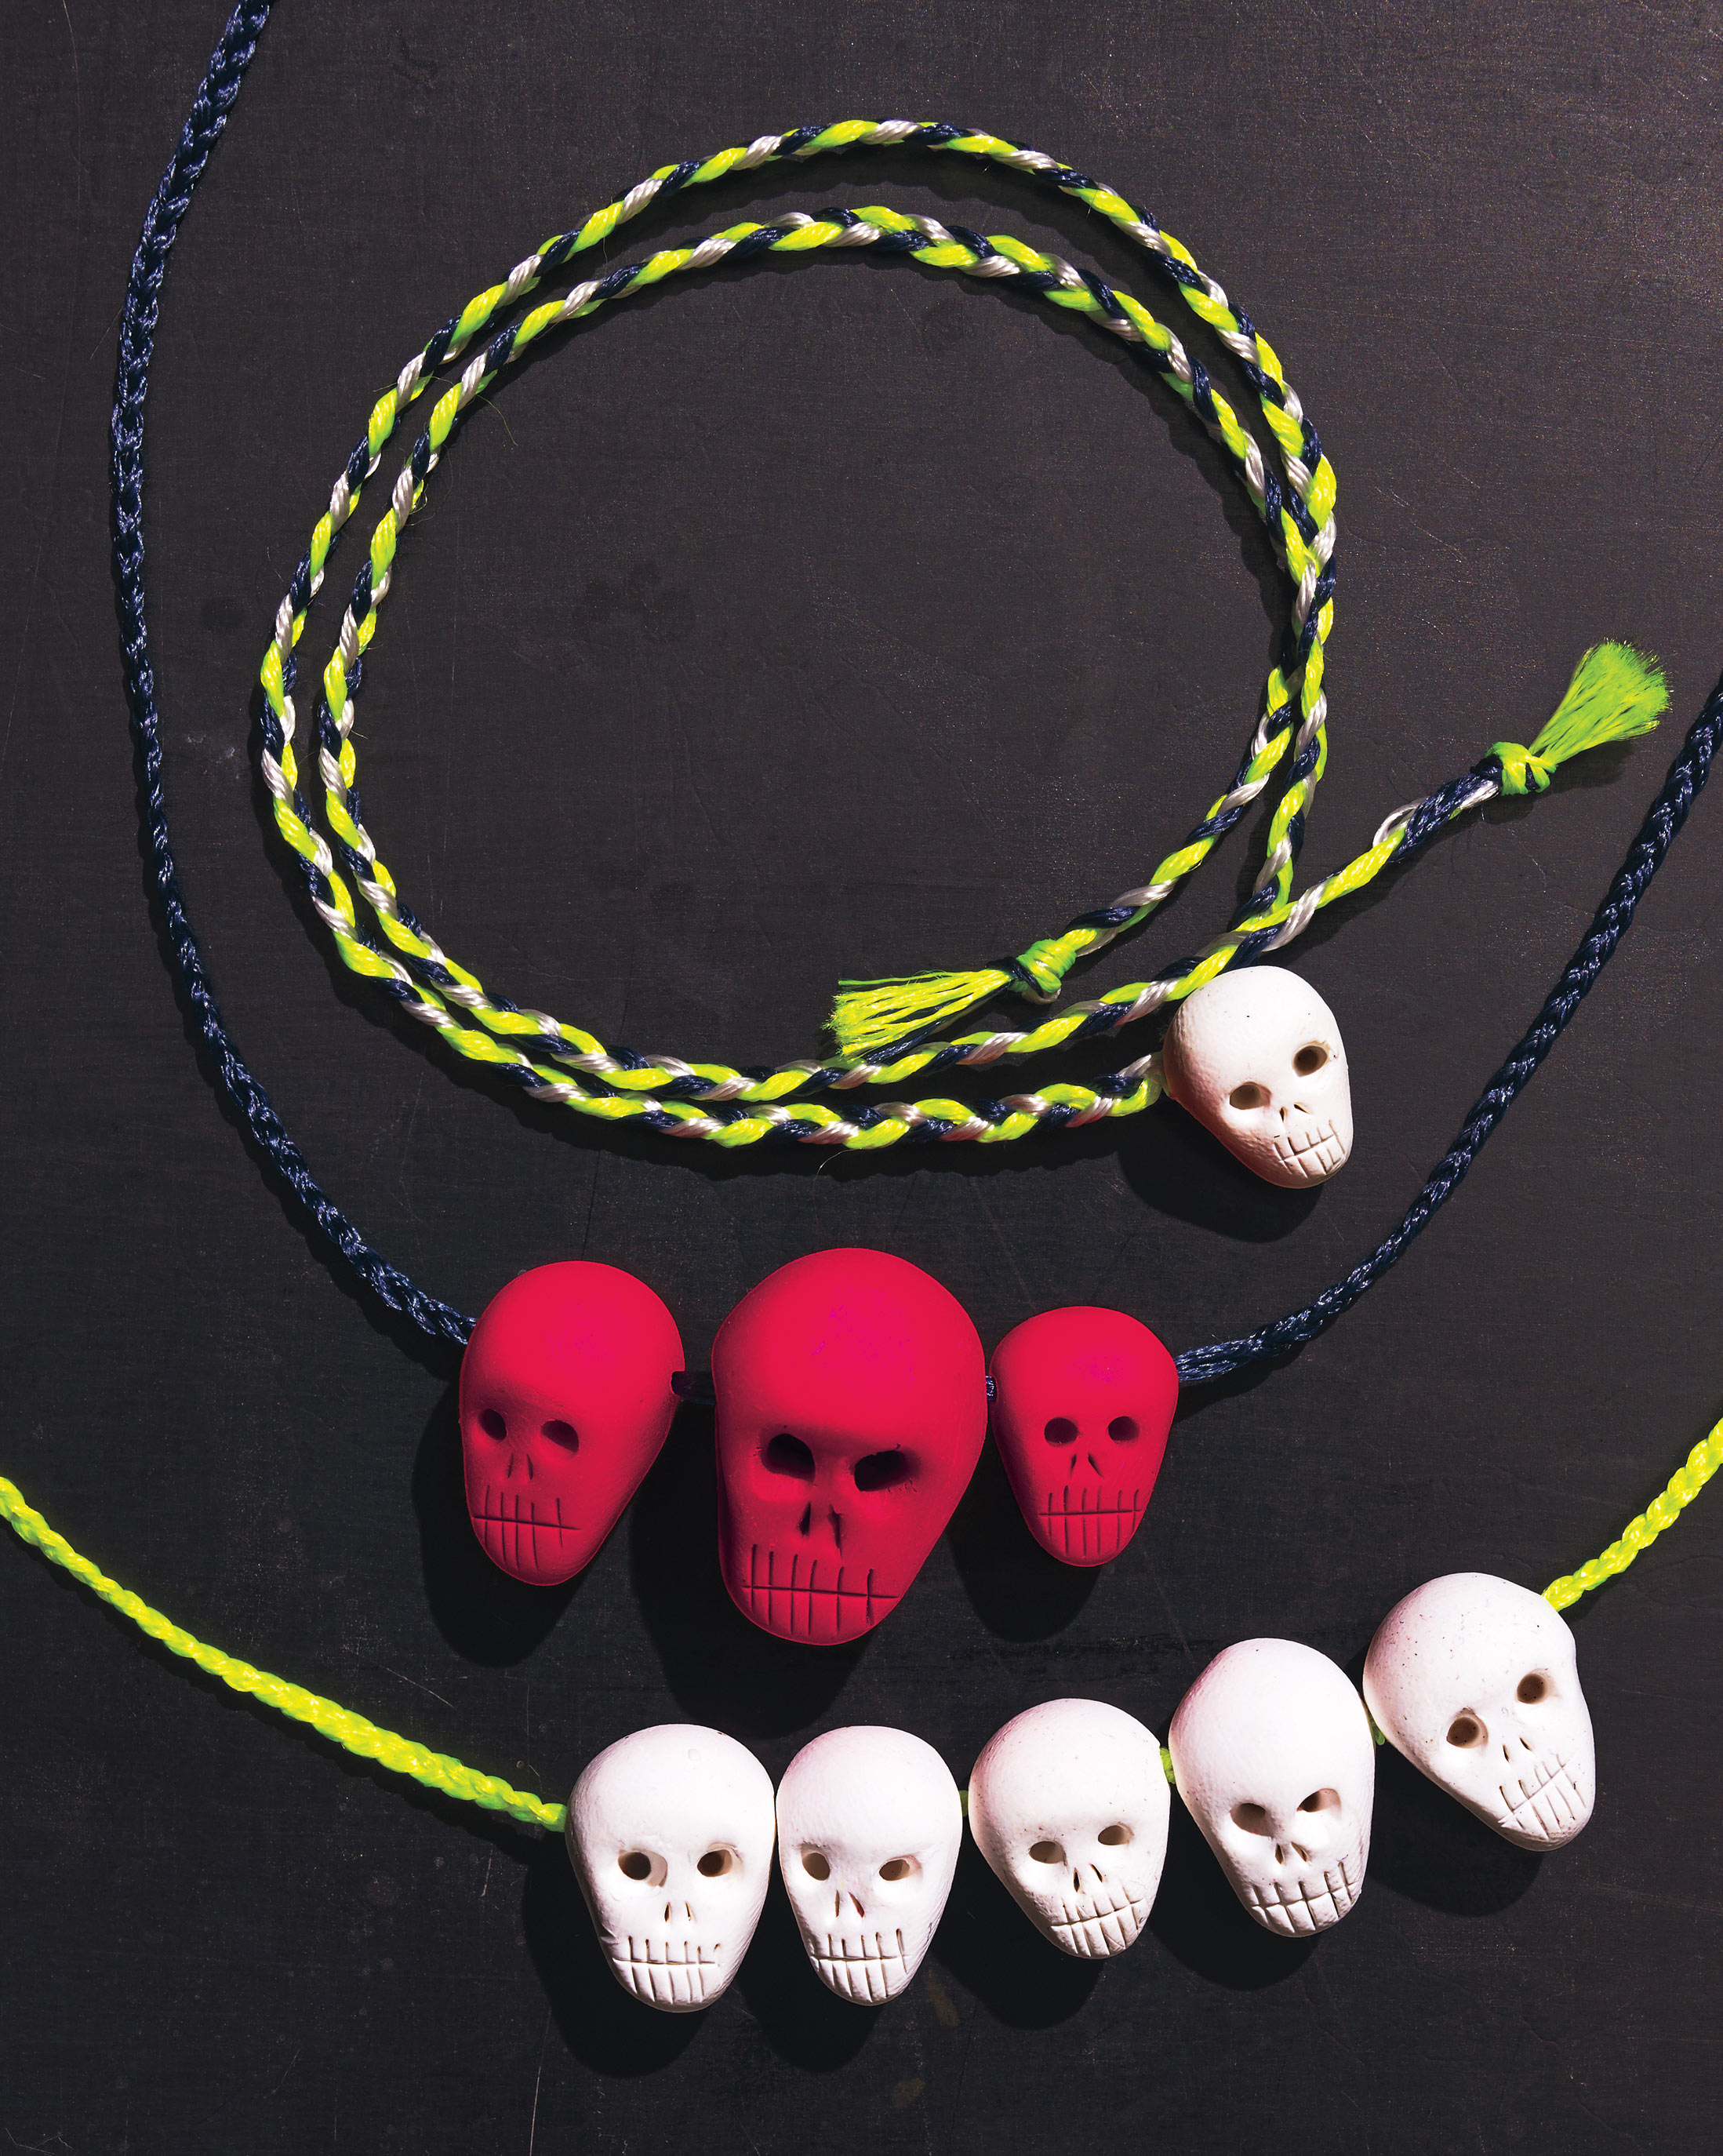 red and white skulls on braided embroidery floss necklaces